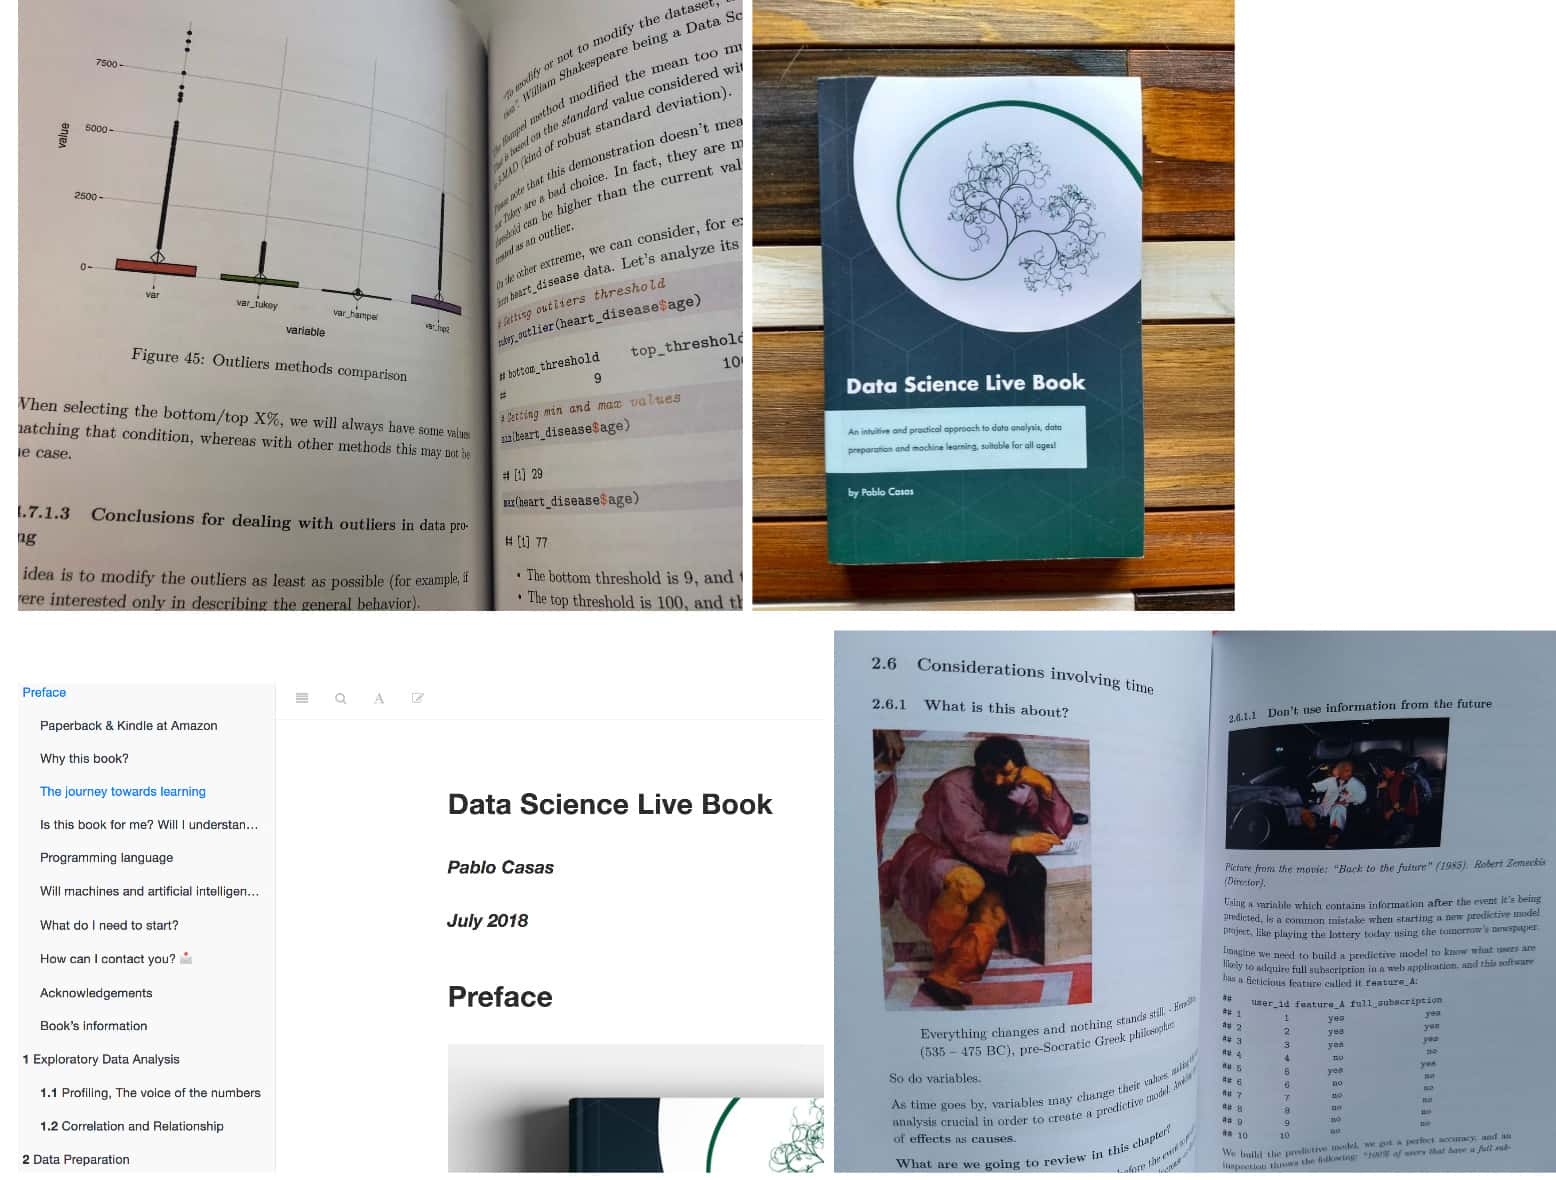 data-science-live-book|659x500